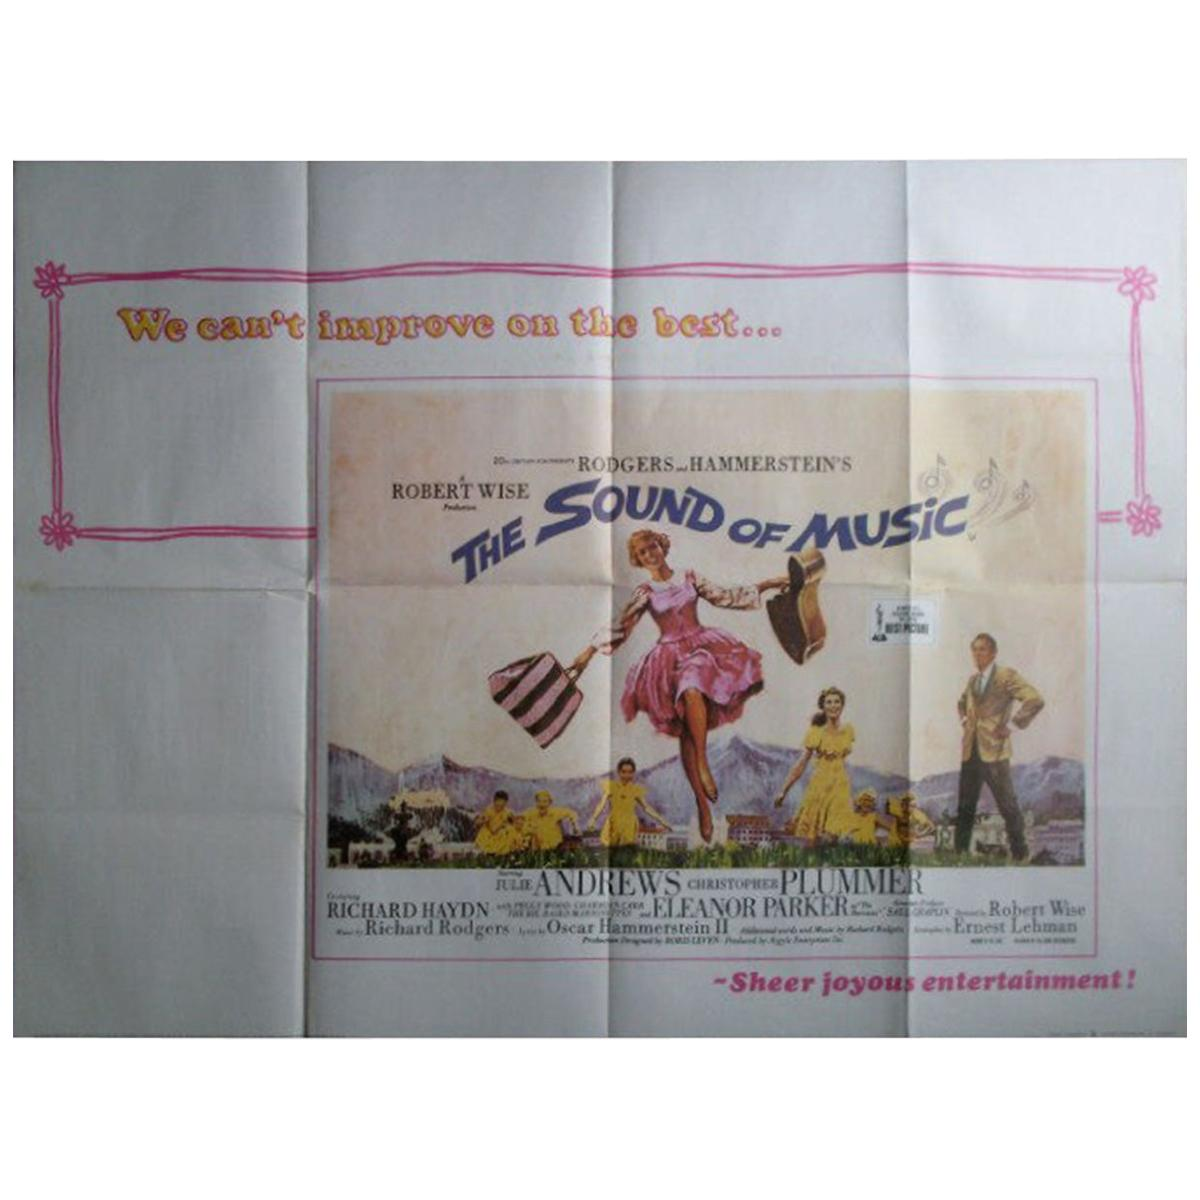 Sound of Music, The '1966r' Poster